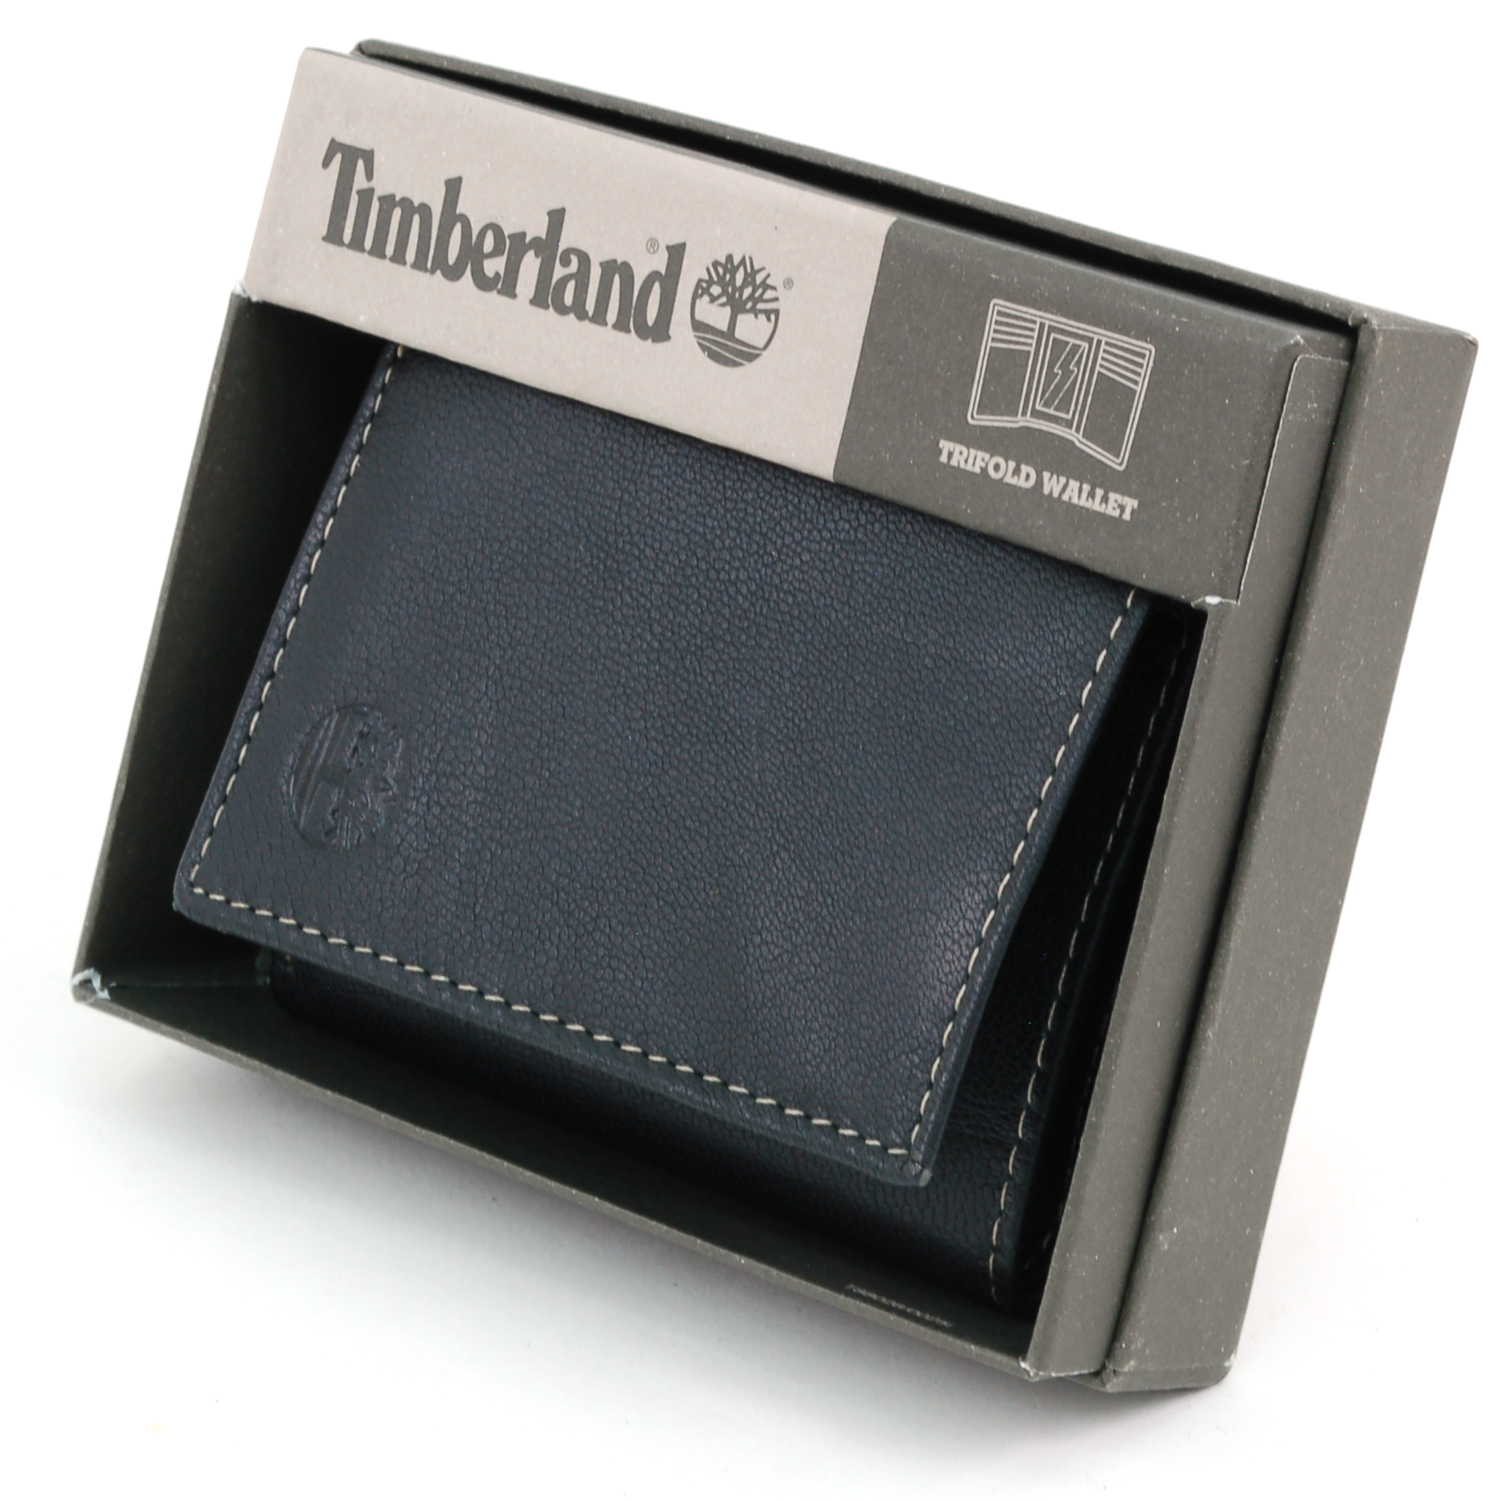 Timberland trifold wallet genuine leather id window 6 2 for 2 id window wallet